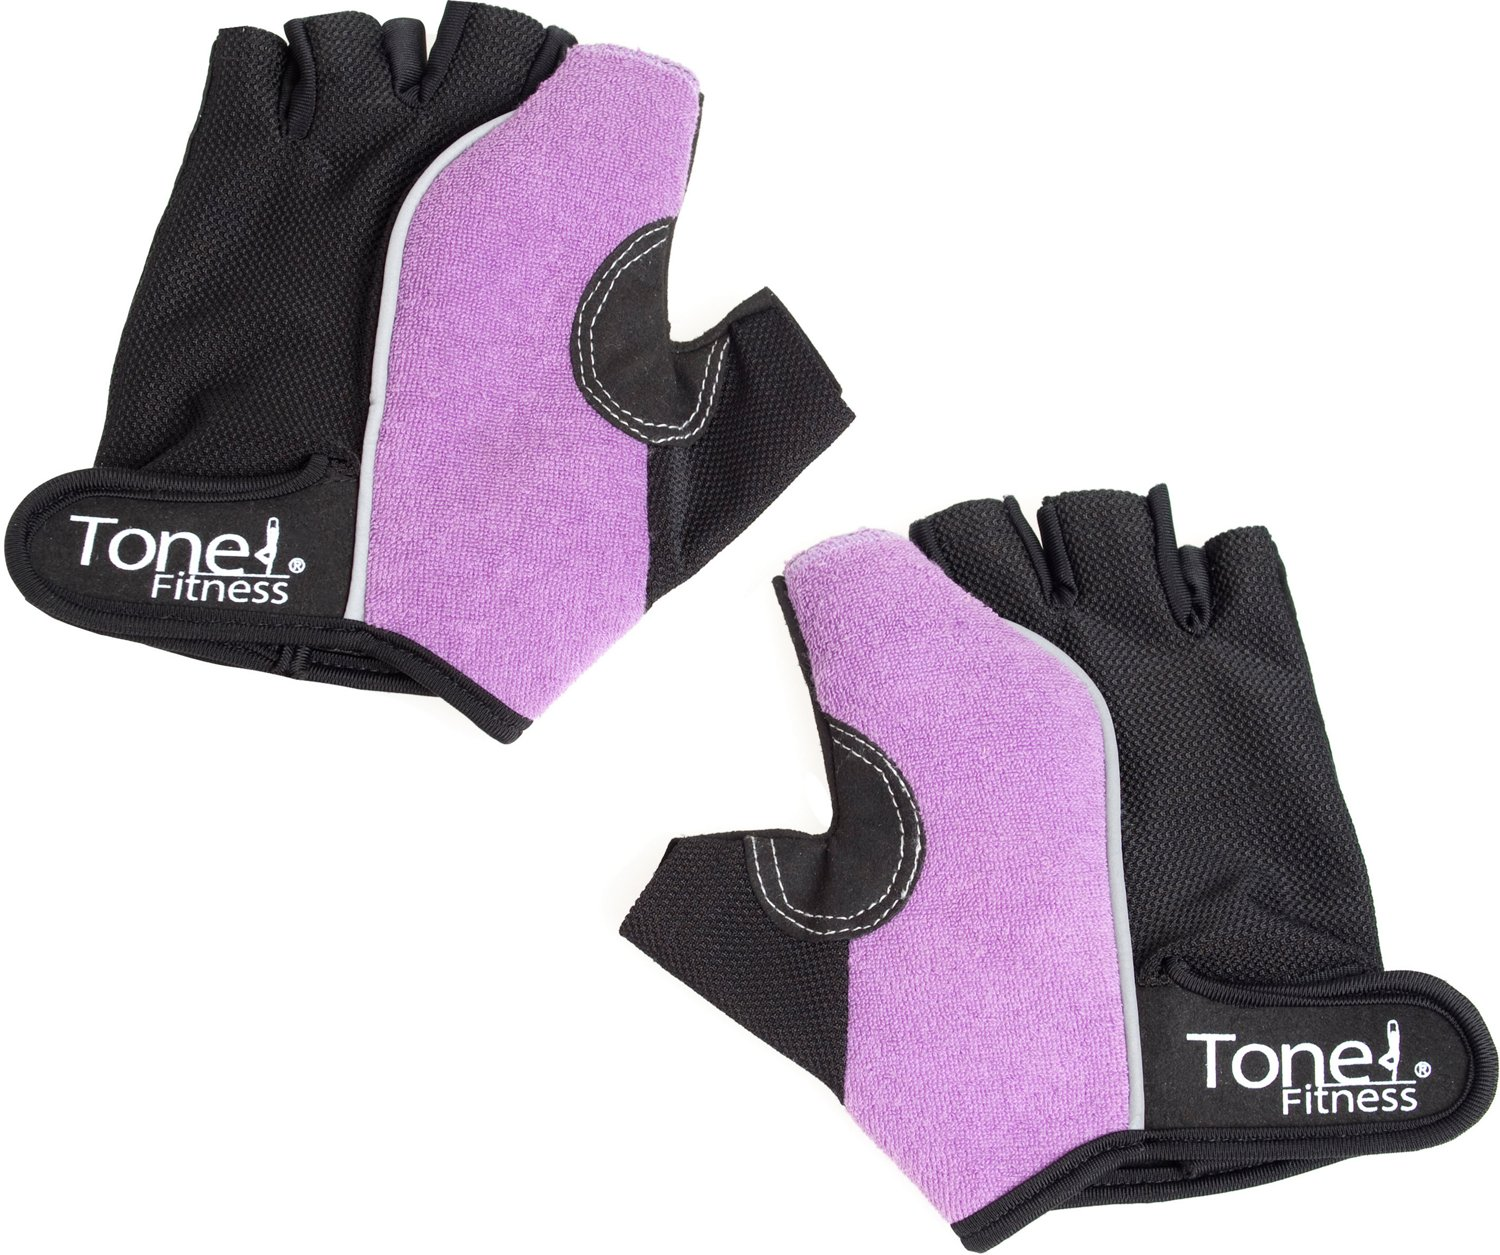 6f92b4da2644 Display product reviews for Tone Fitness Women's Weightlifting Gloves